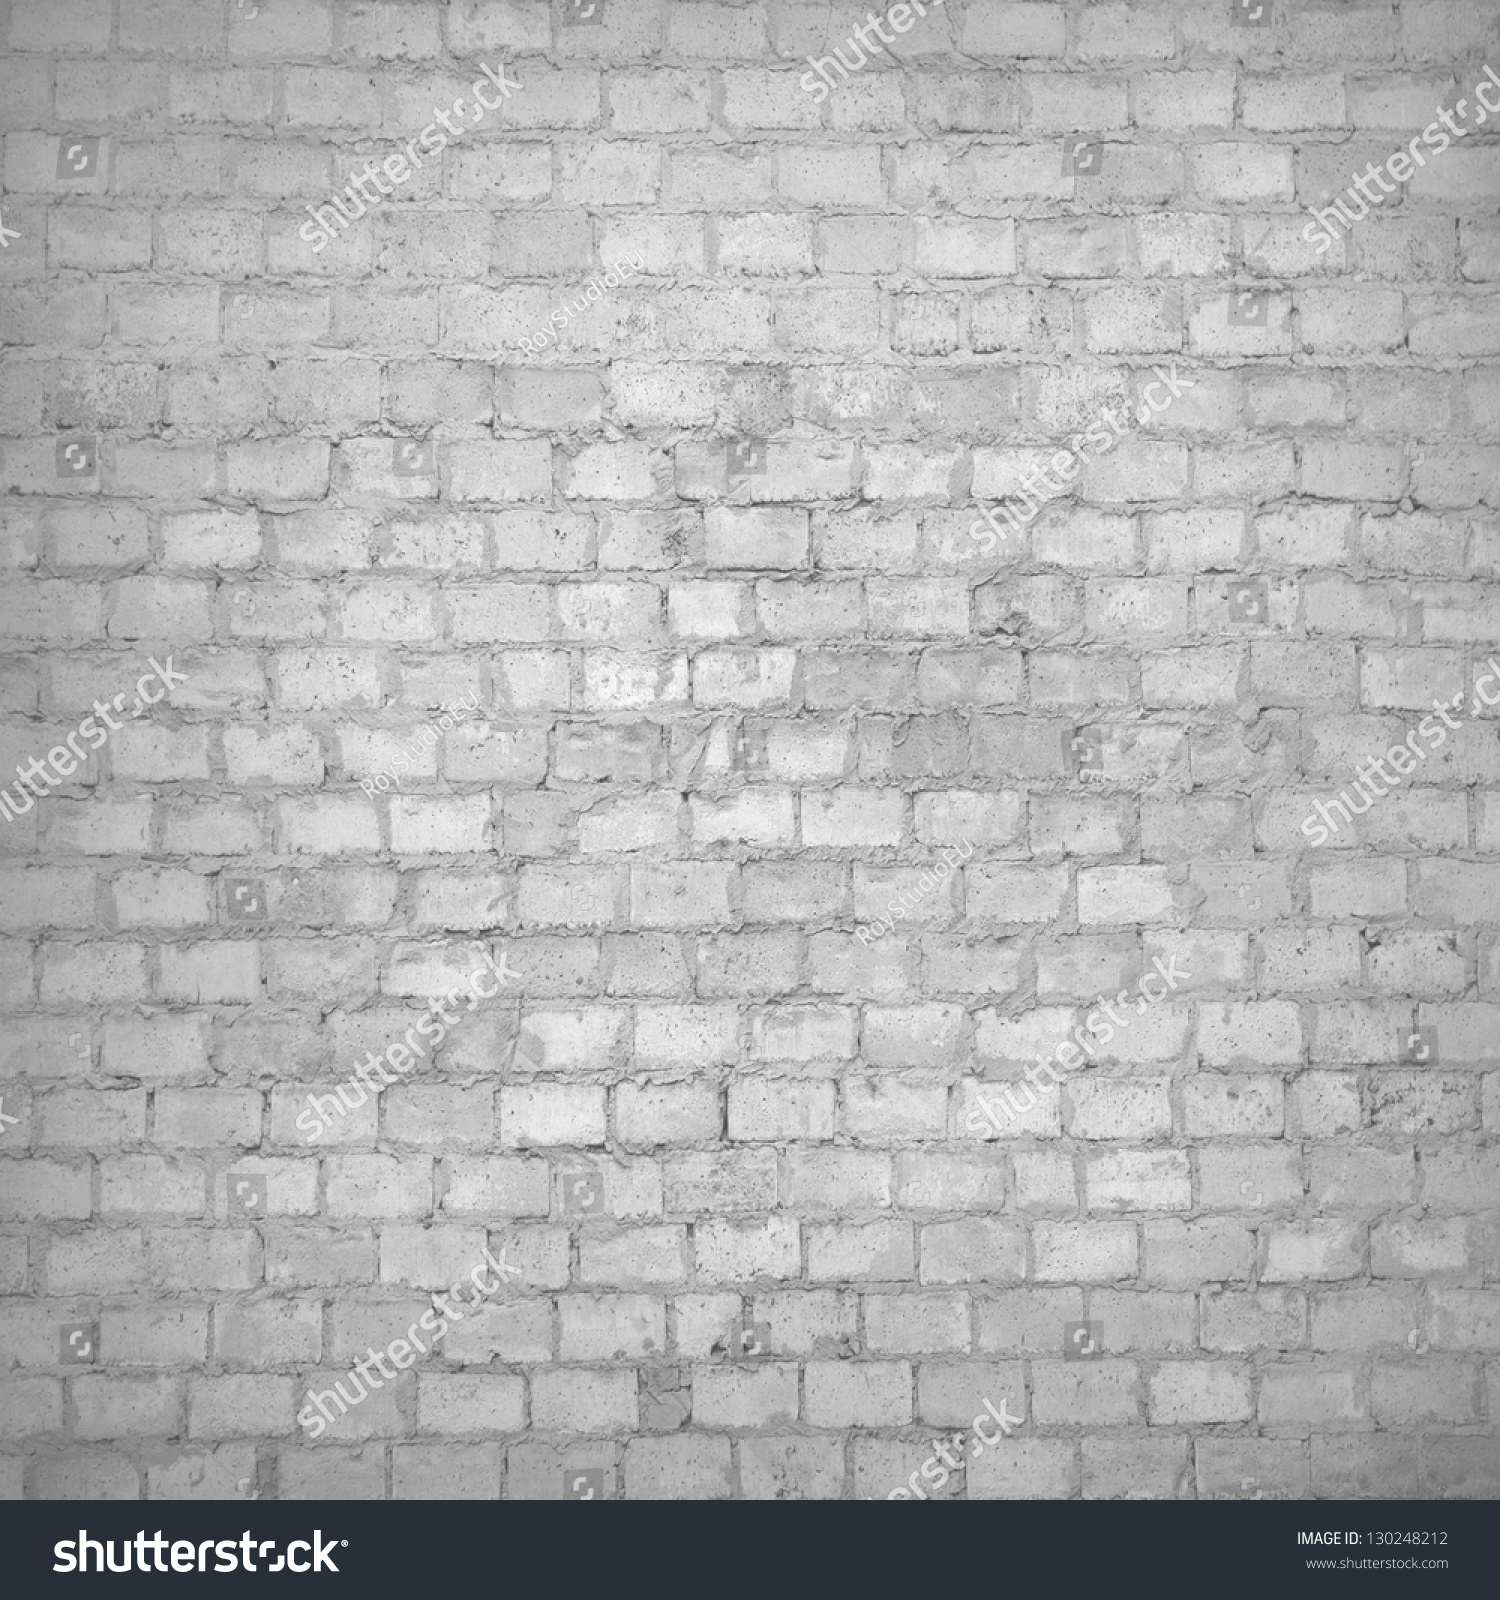 Gray Brick Wall Texture Black And White Grunge Background With Vignetted Corners Of Interior